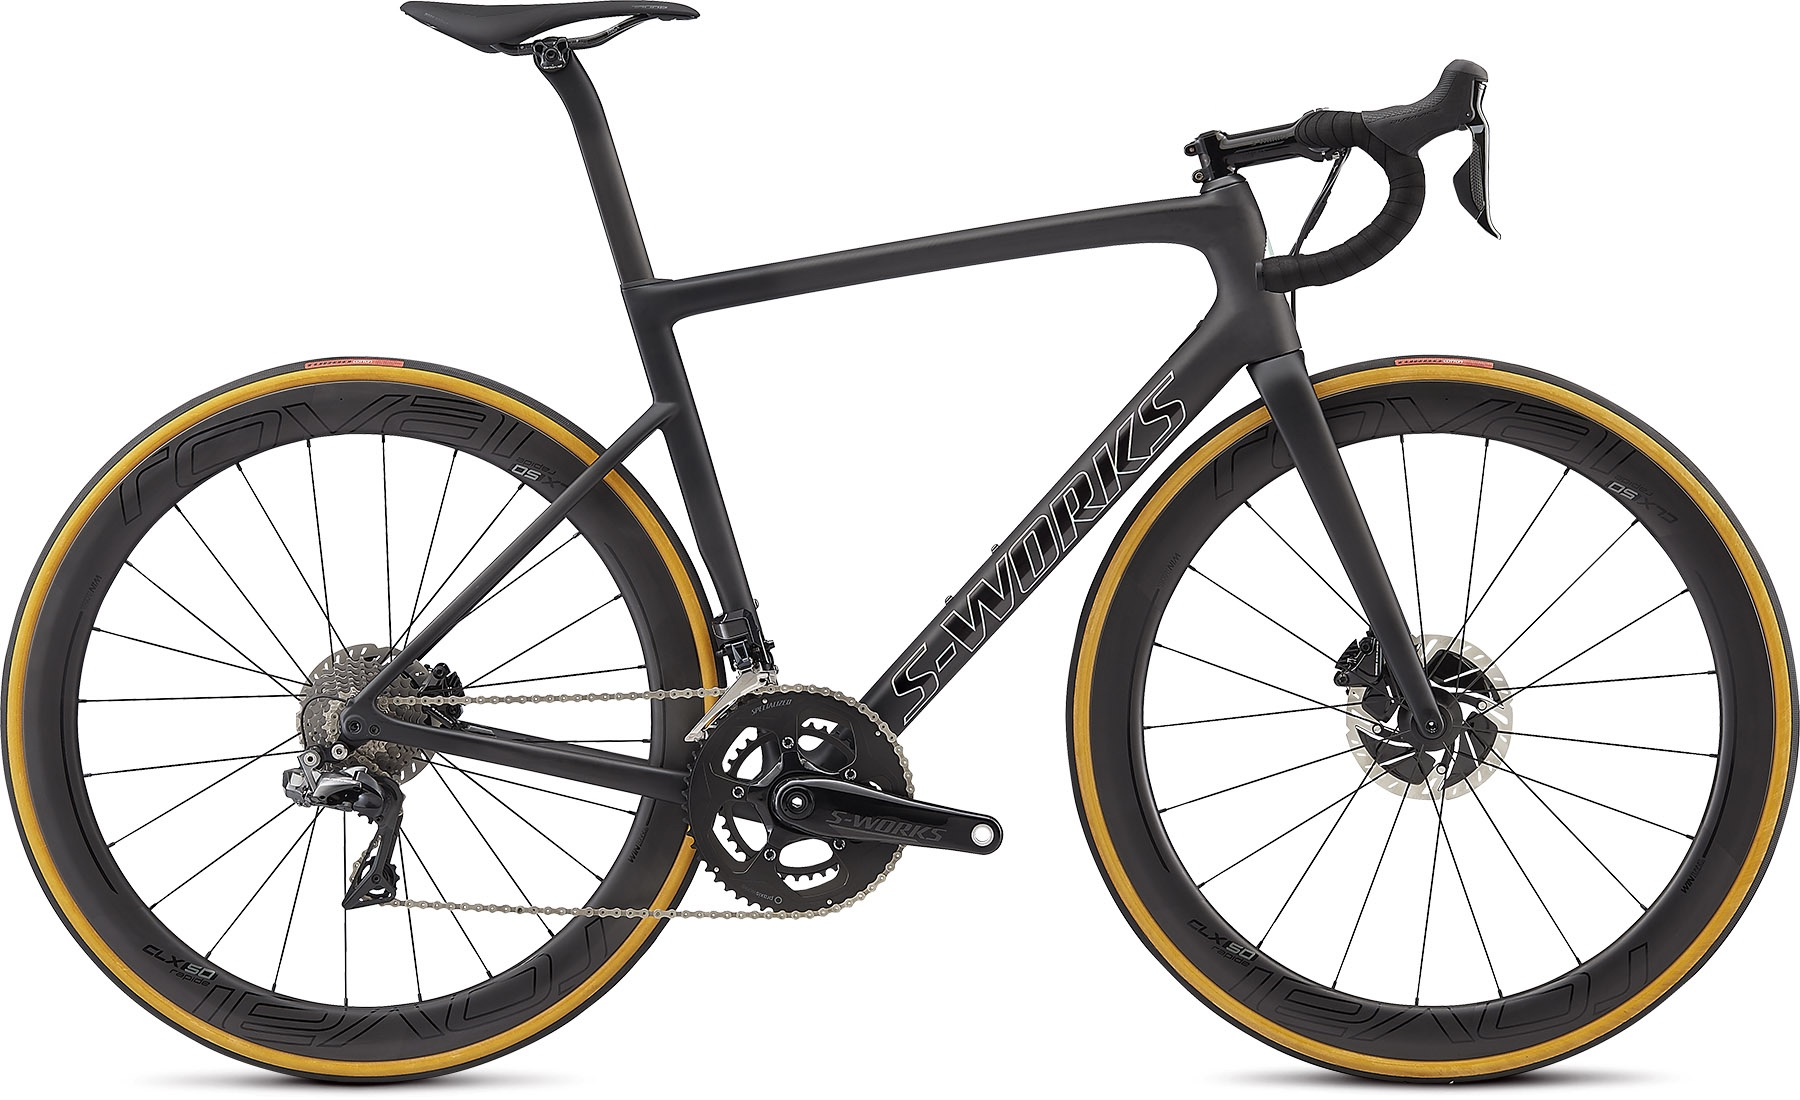 Specialized launches long awaited S-Works Tarmac Disc ...